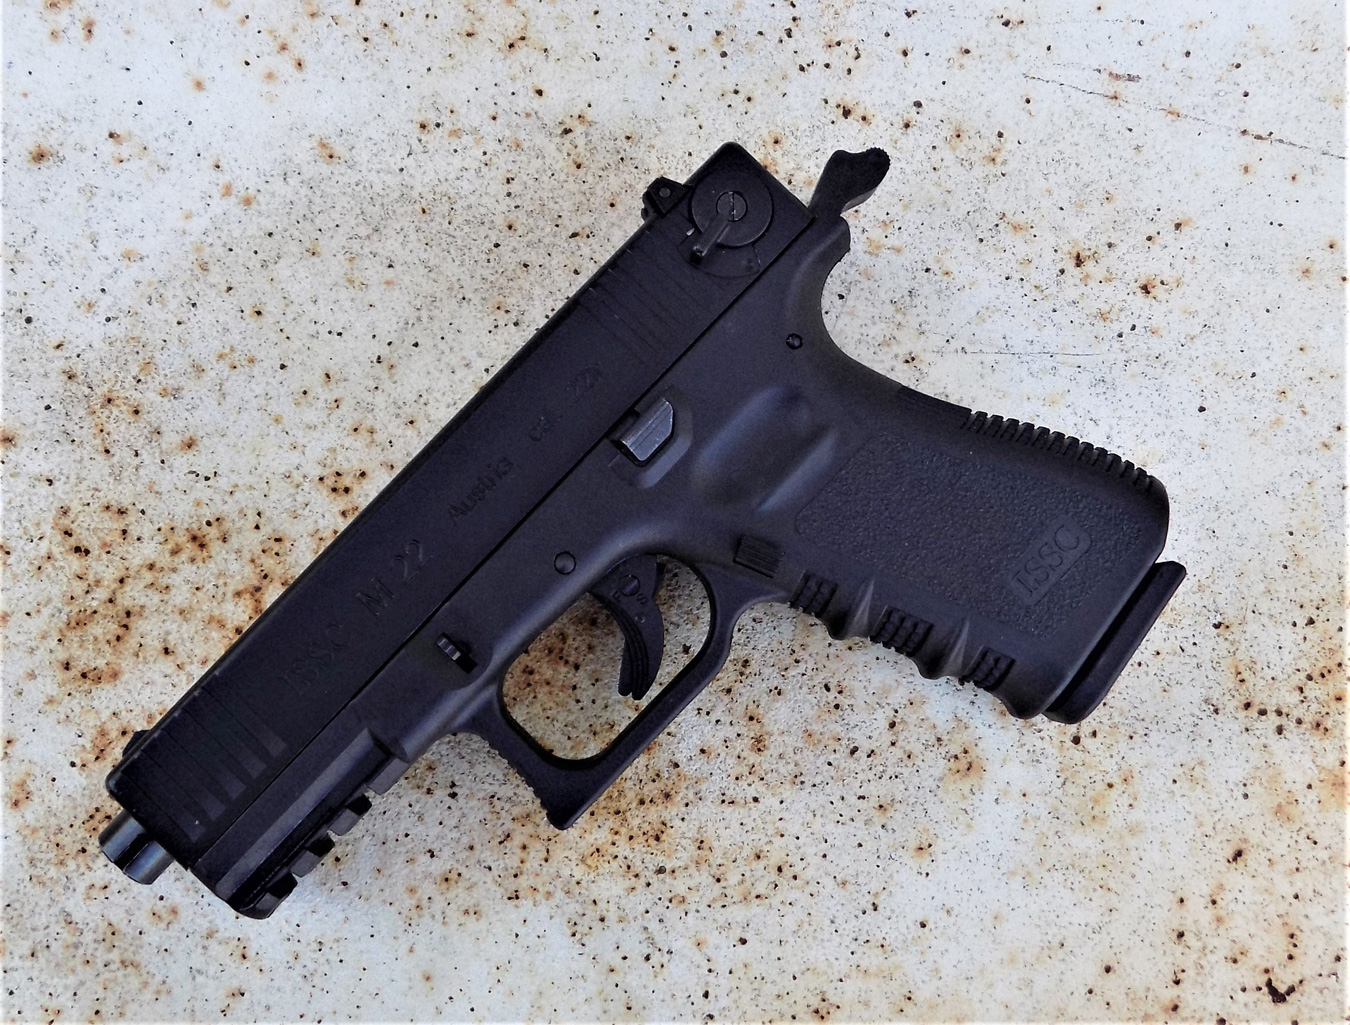 ISSC M22 pistol with the hammer cocked back